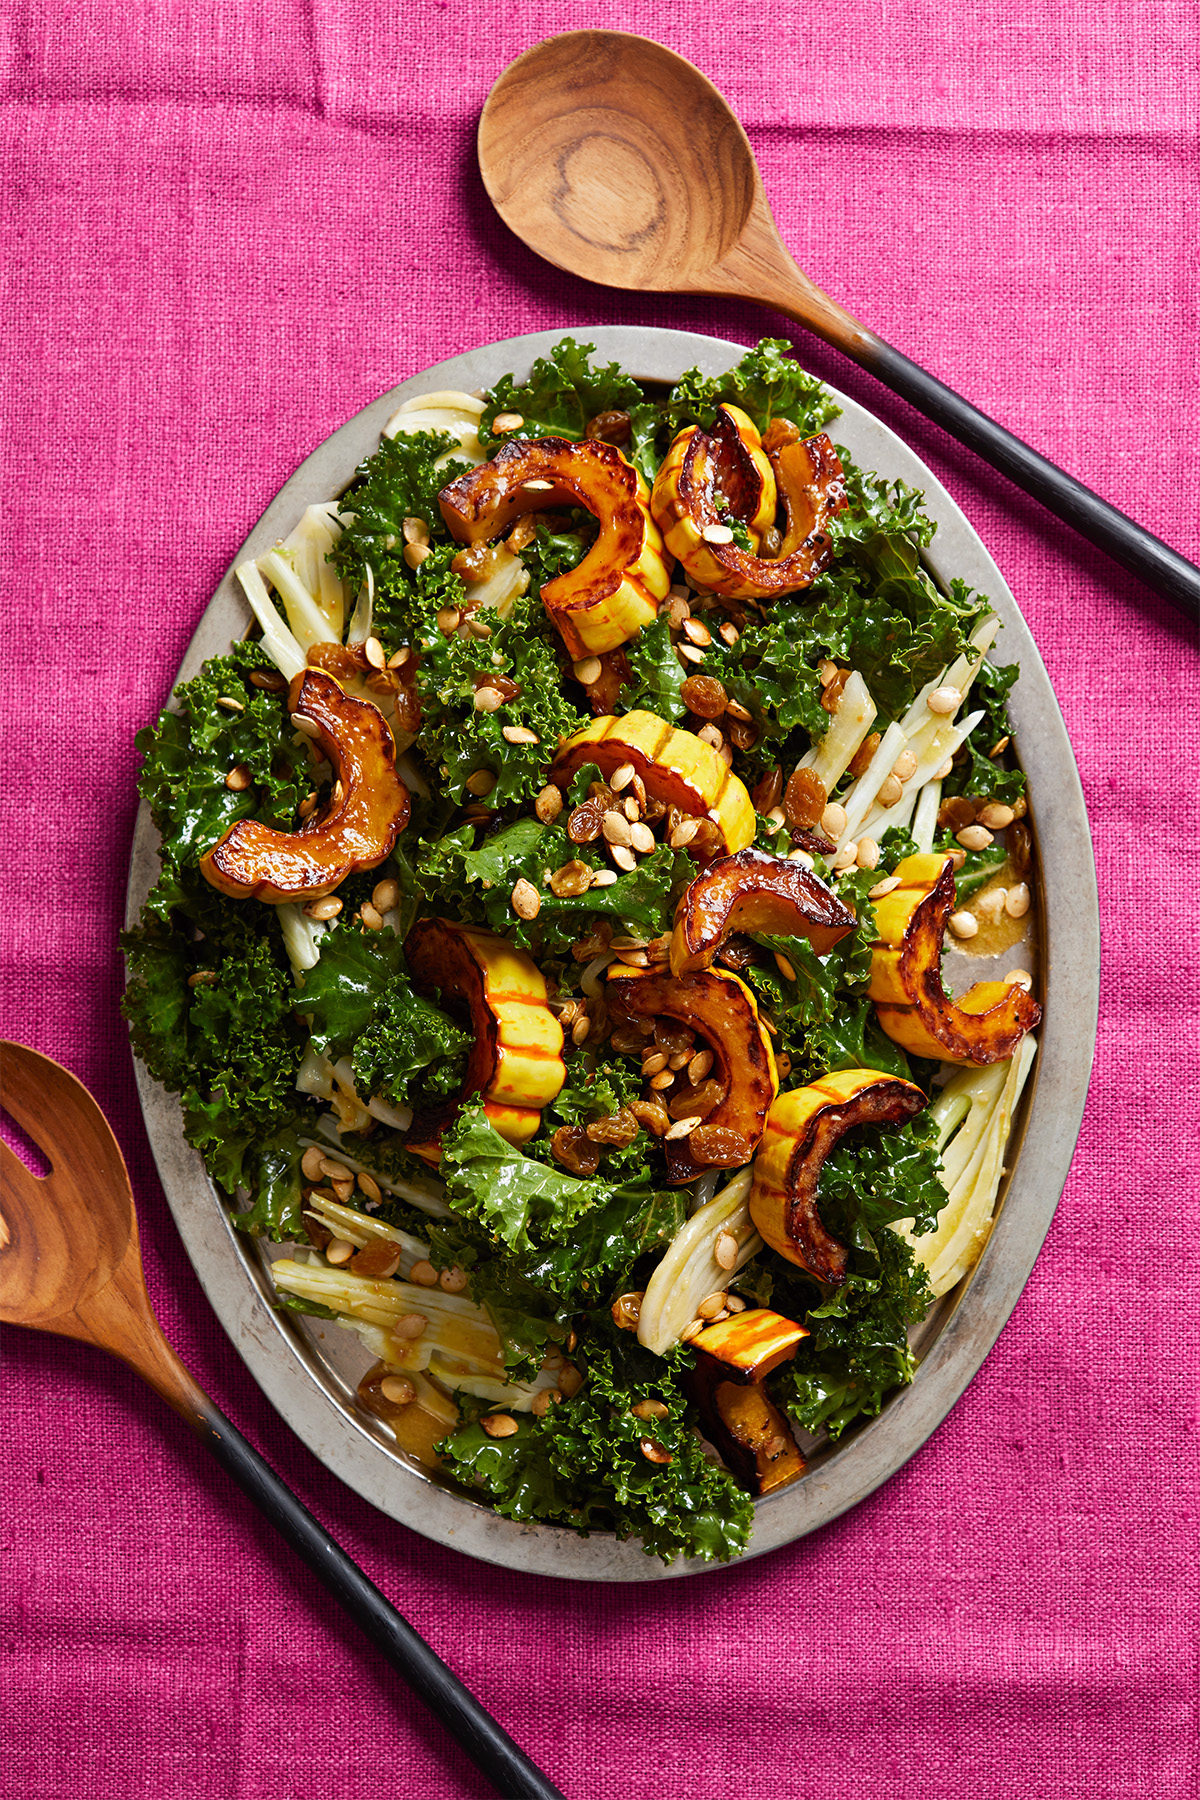 Kale, Fennel, and Roasted Delicata Salad on oval platter pink tablecloth